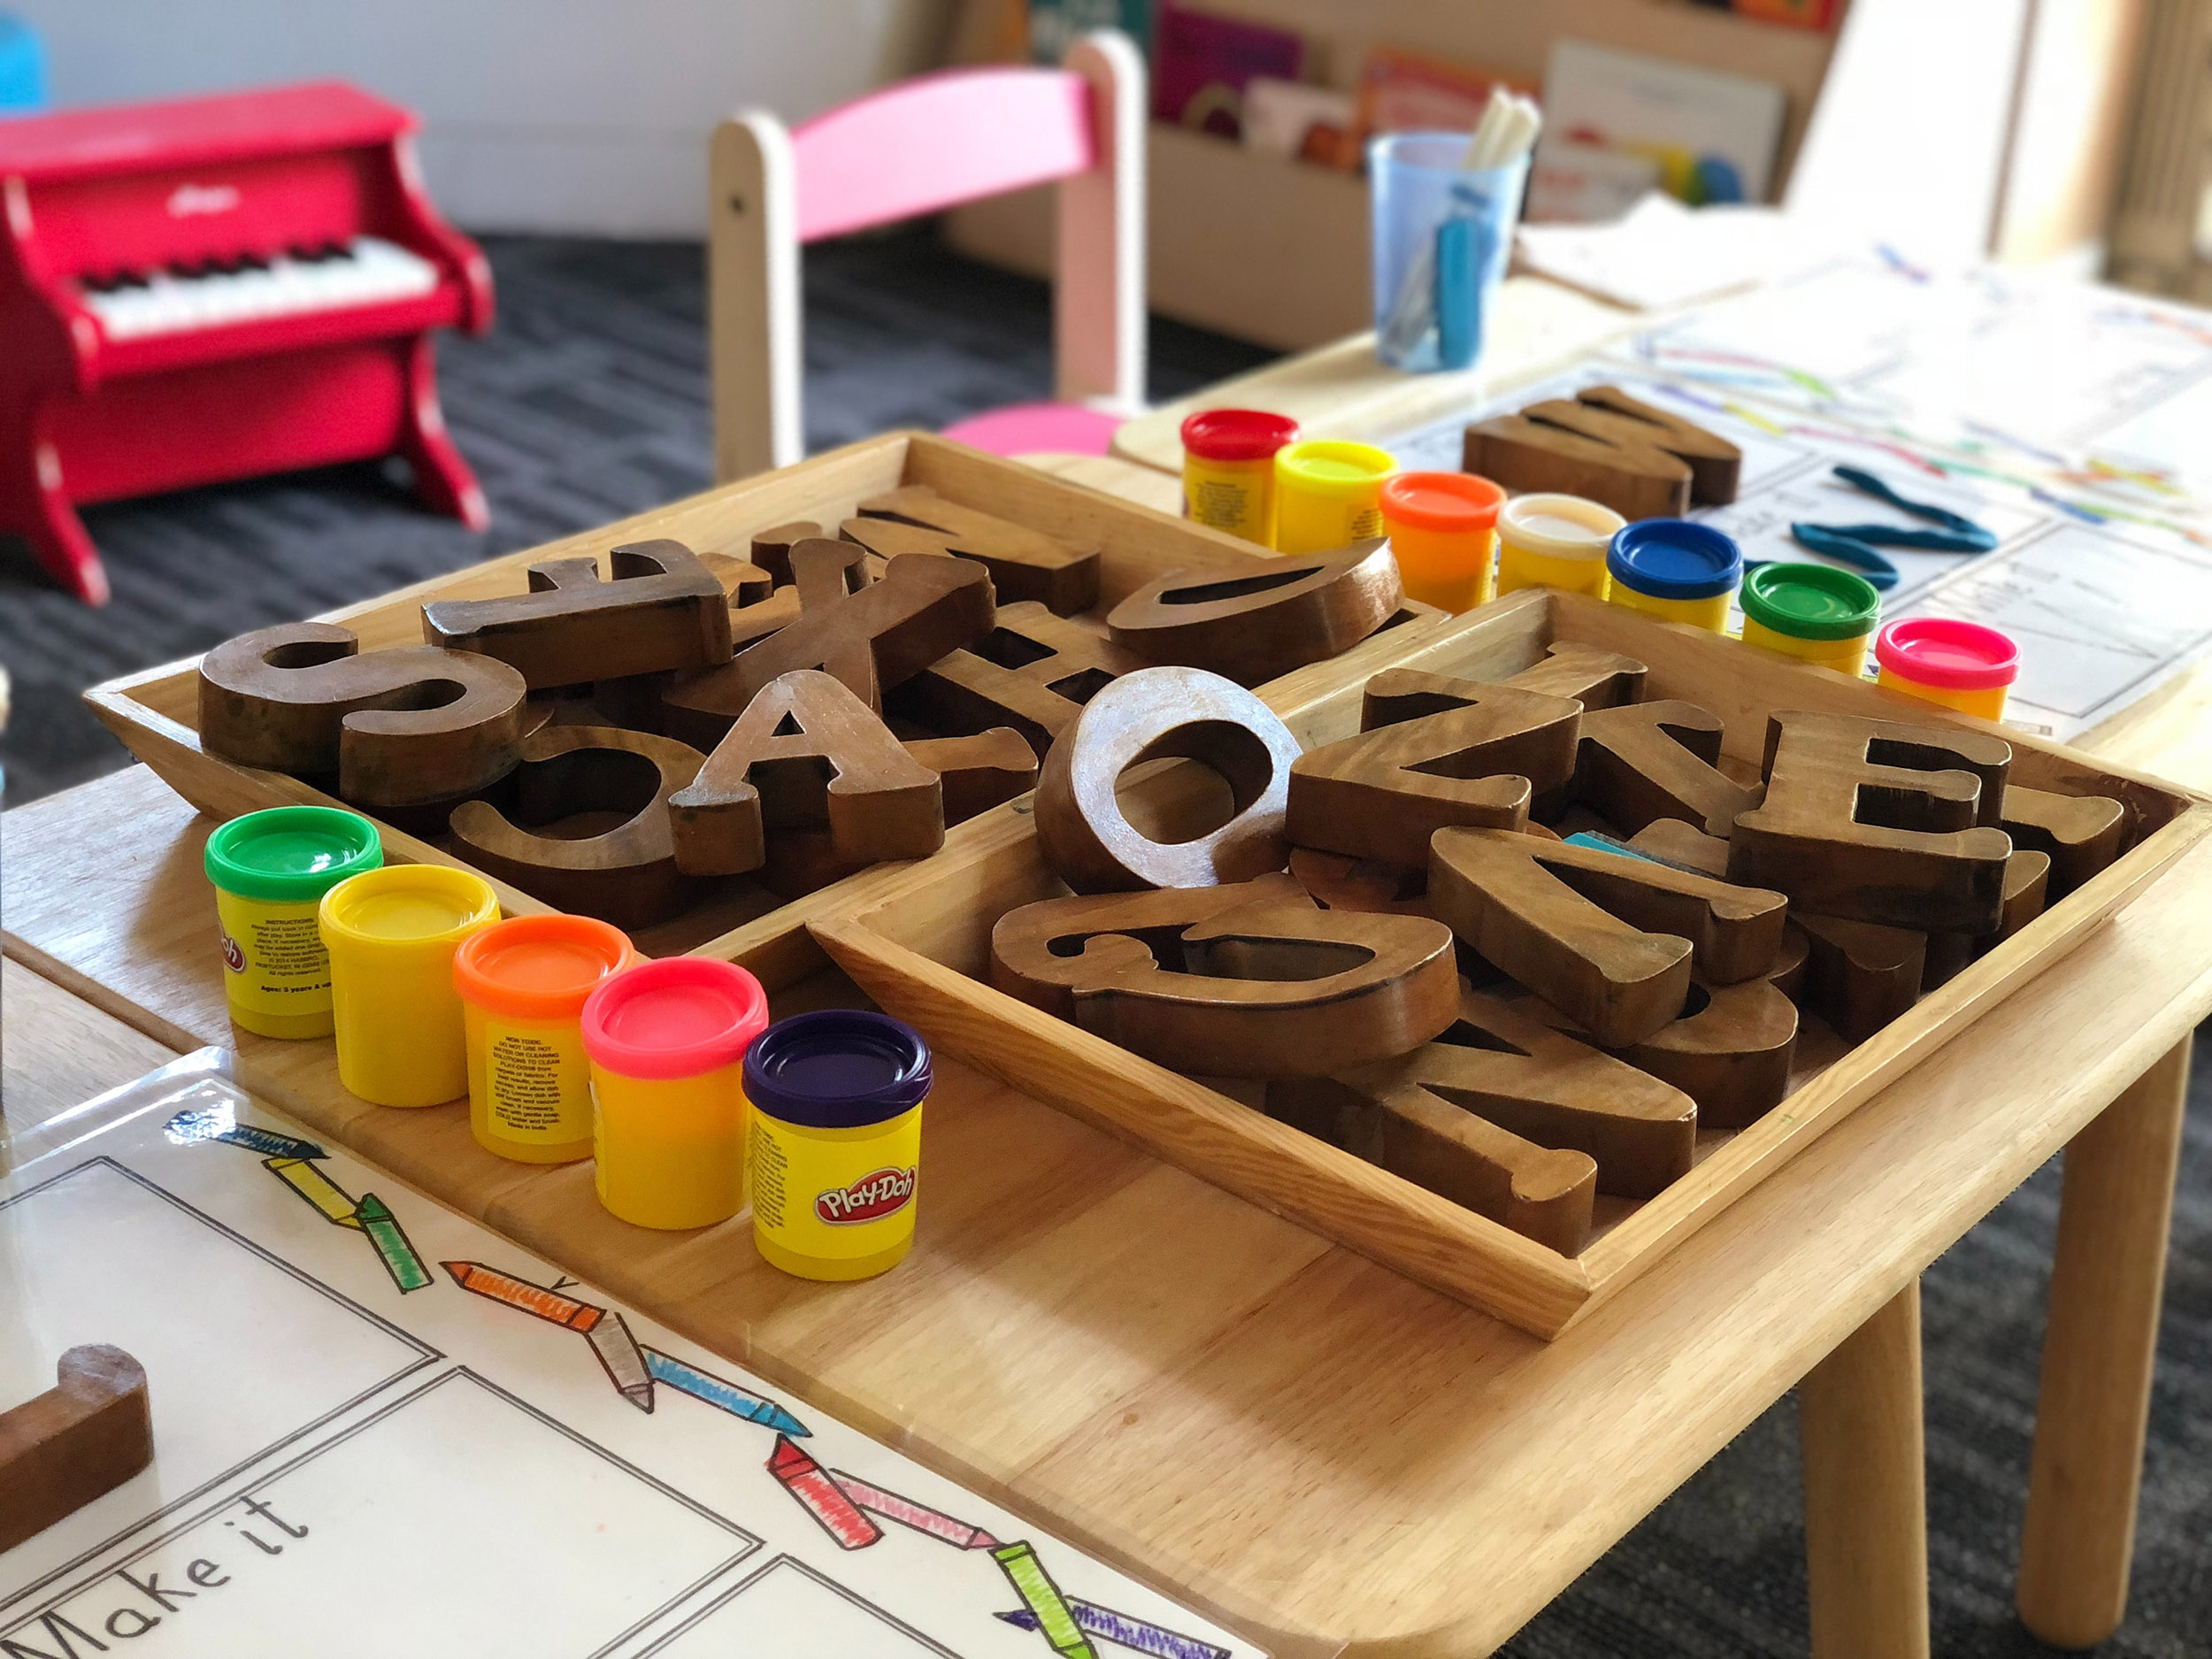 The 4 Questions Every Preschooler is Asking